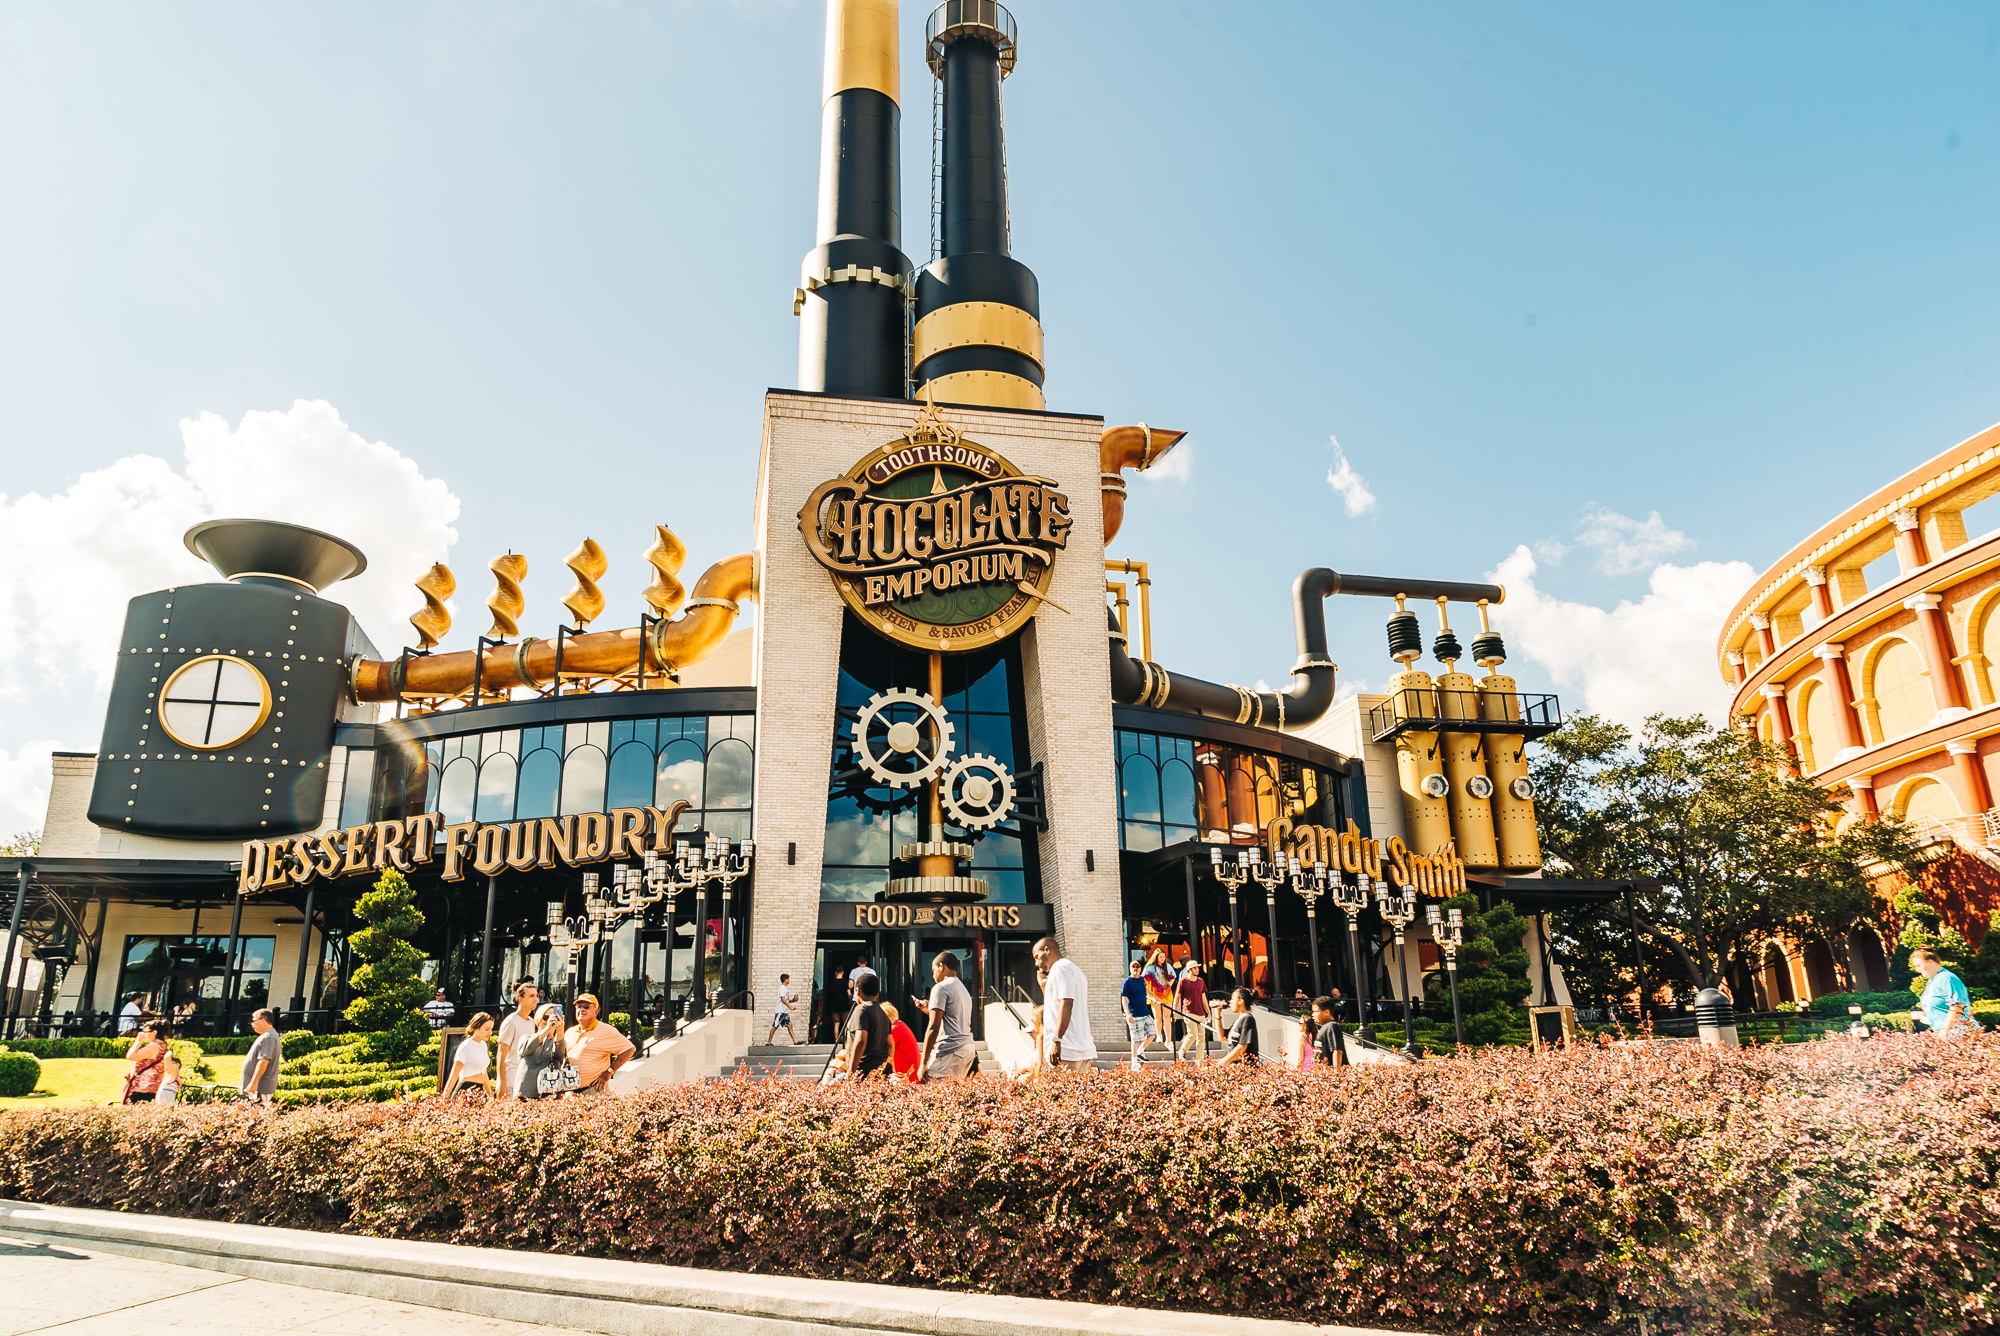 The amazing Chocolate Emporium restaurant at Universal Resort Orlando